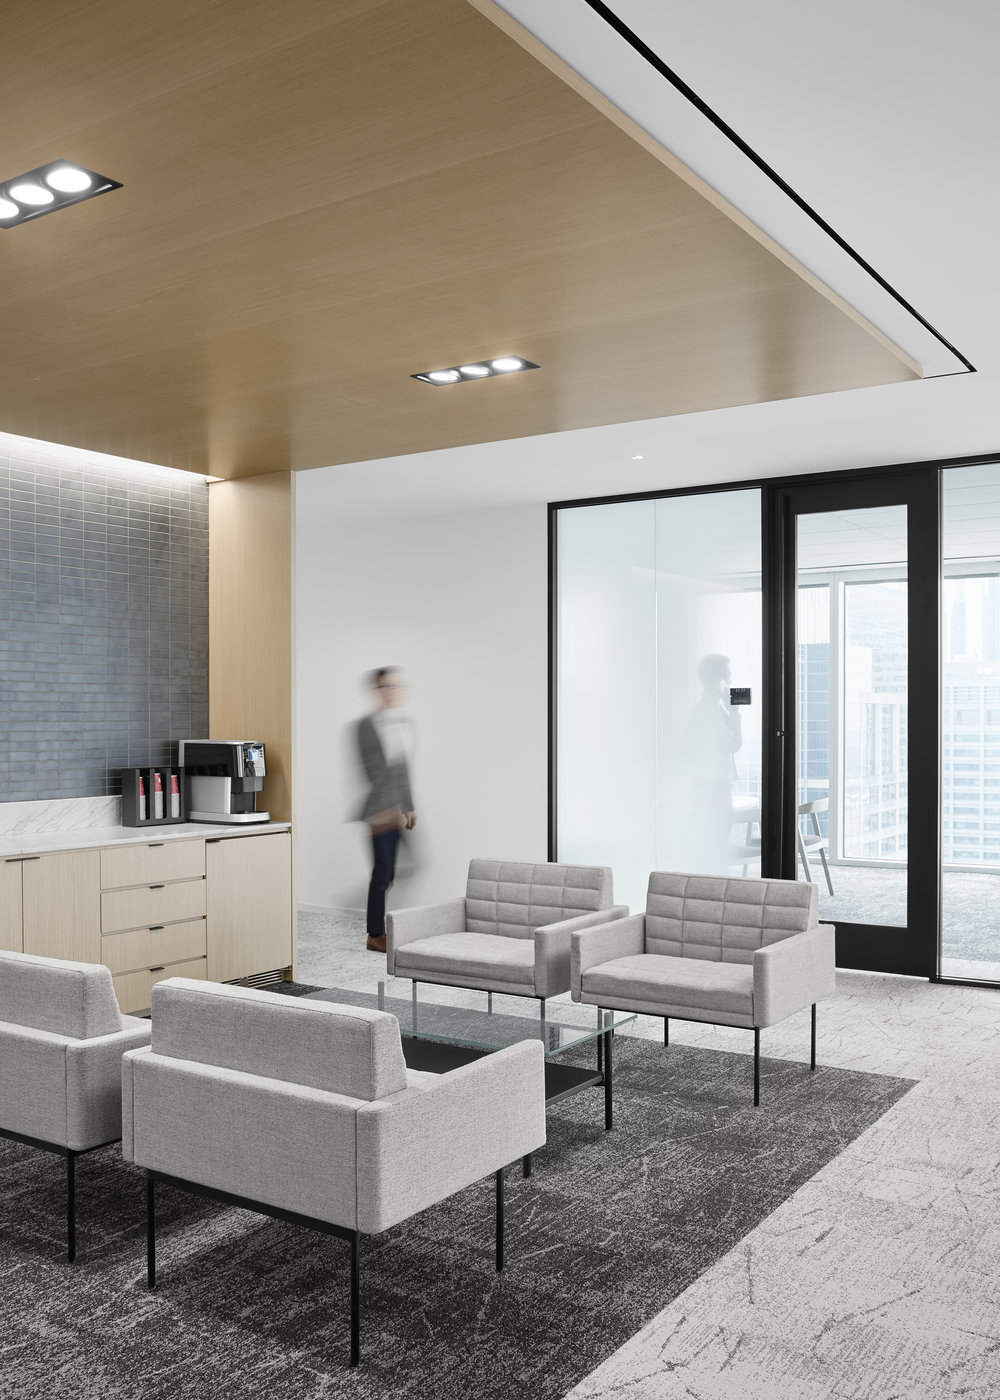 1022-Sooner Pipe Houston by Kirksey Architecture Photos by Jonathan Dean-Exec Waiting with People-Edit.jpg